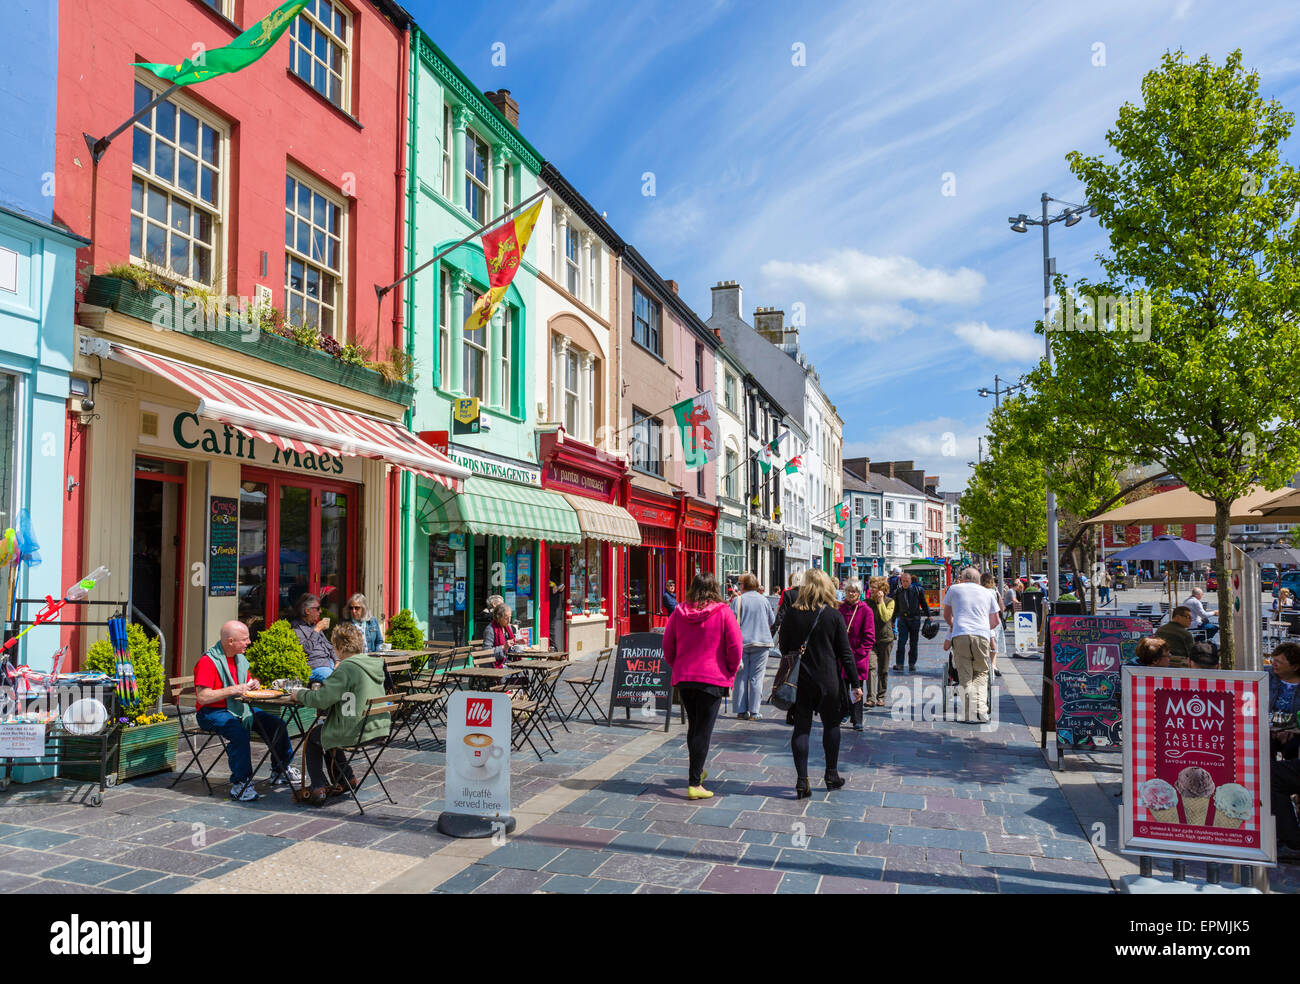 Shops, pubs and cafes on Castle Square, Caernarfon, Gwynedd, Wales, UK - Stock Image